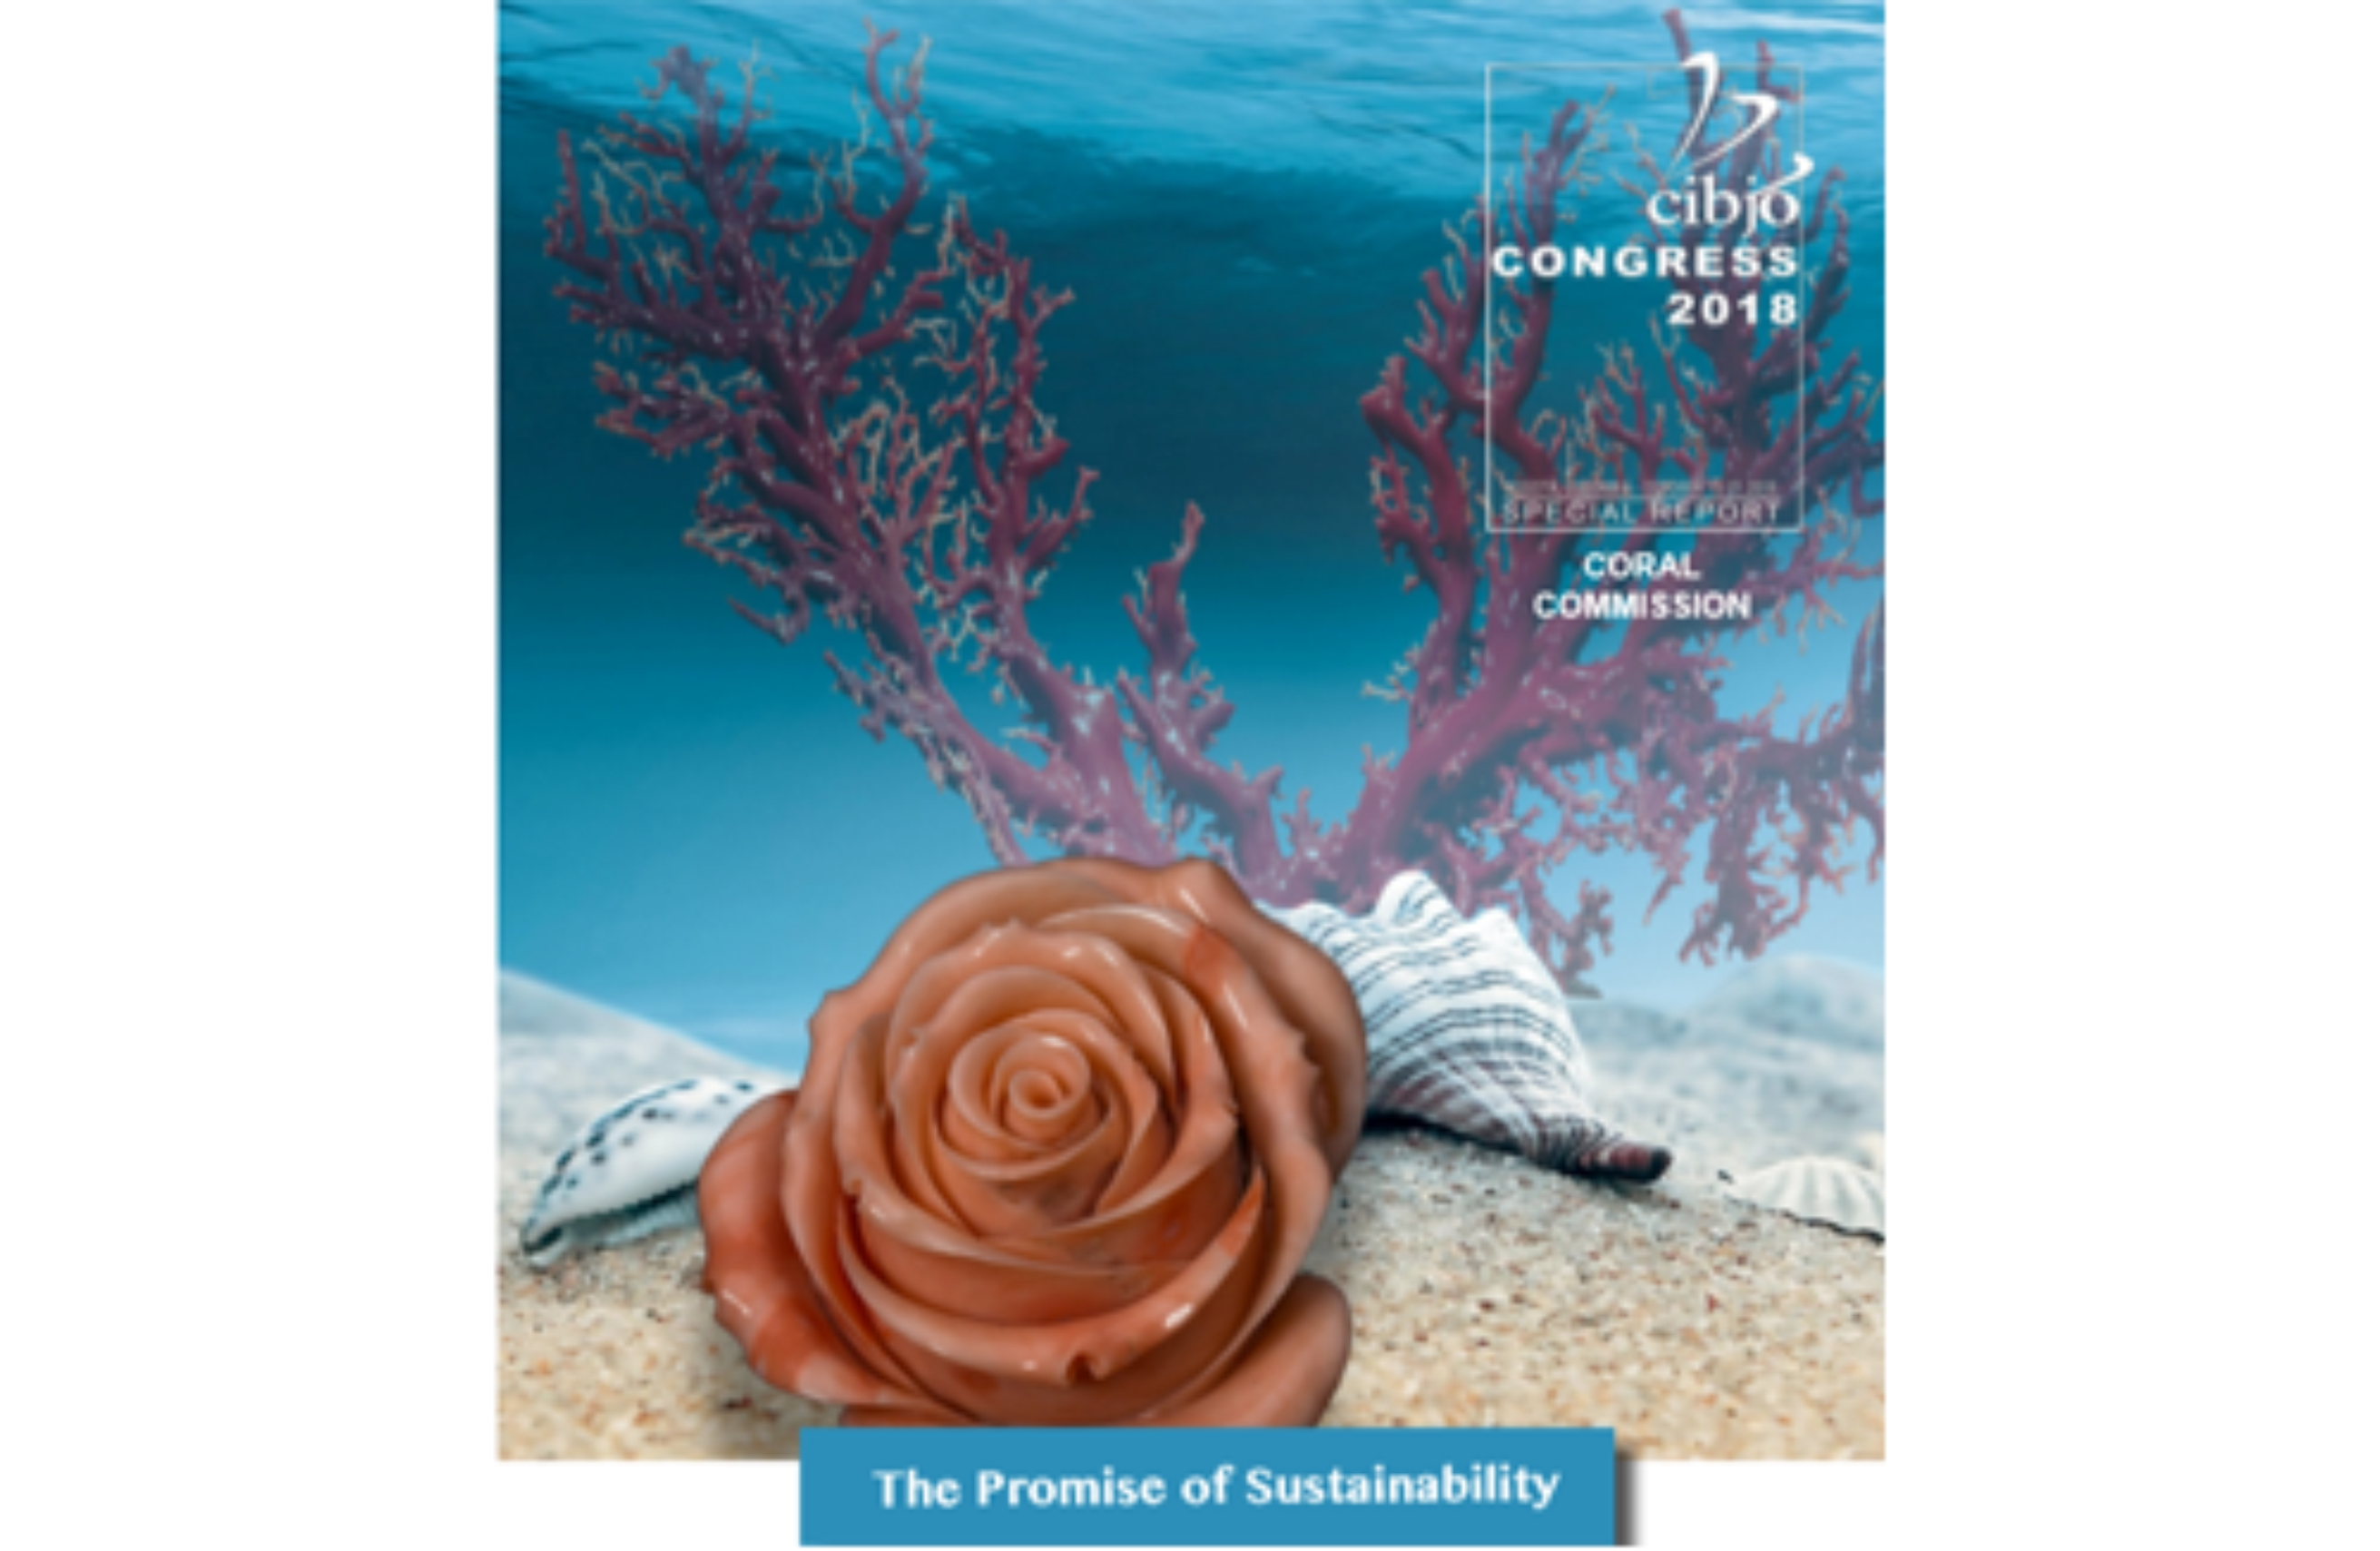 Coral Commission to Focus on Sustainability of Precious Coral Reefs, Online Education at CIBJO Congress